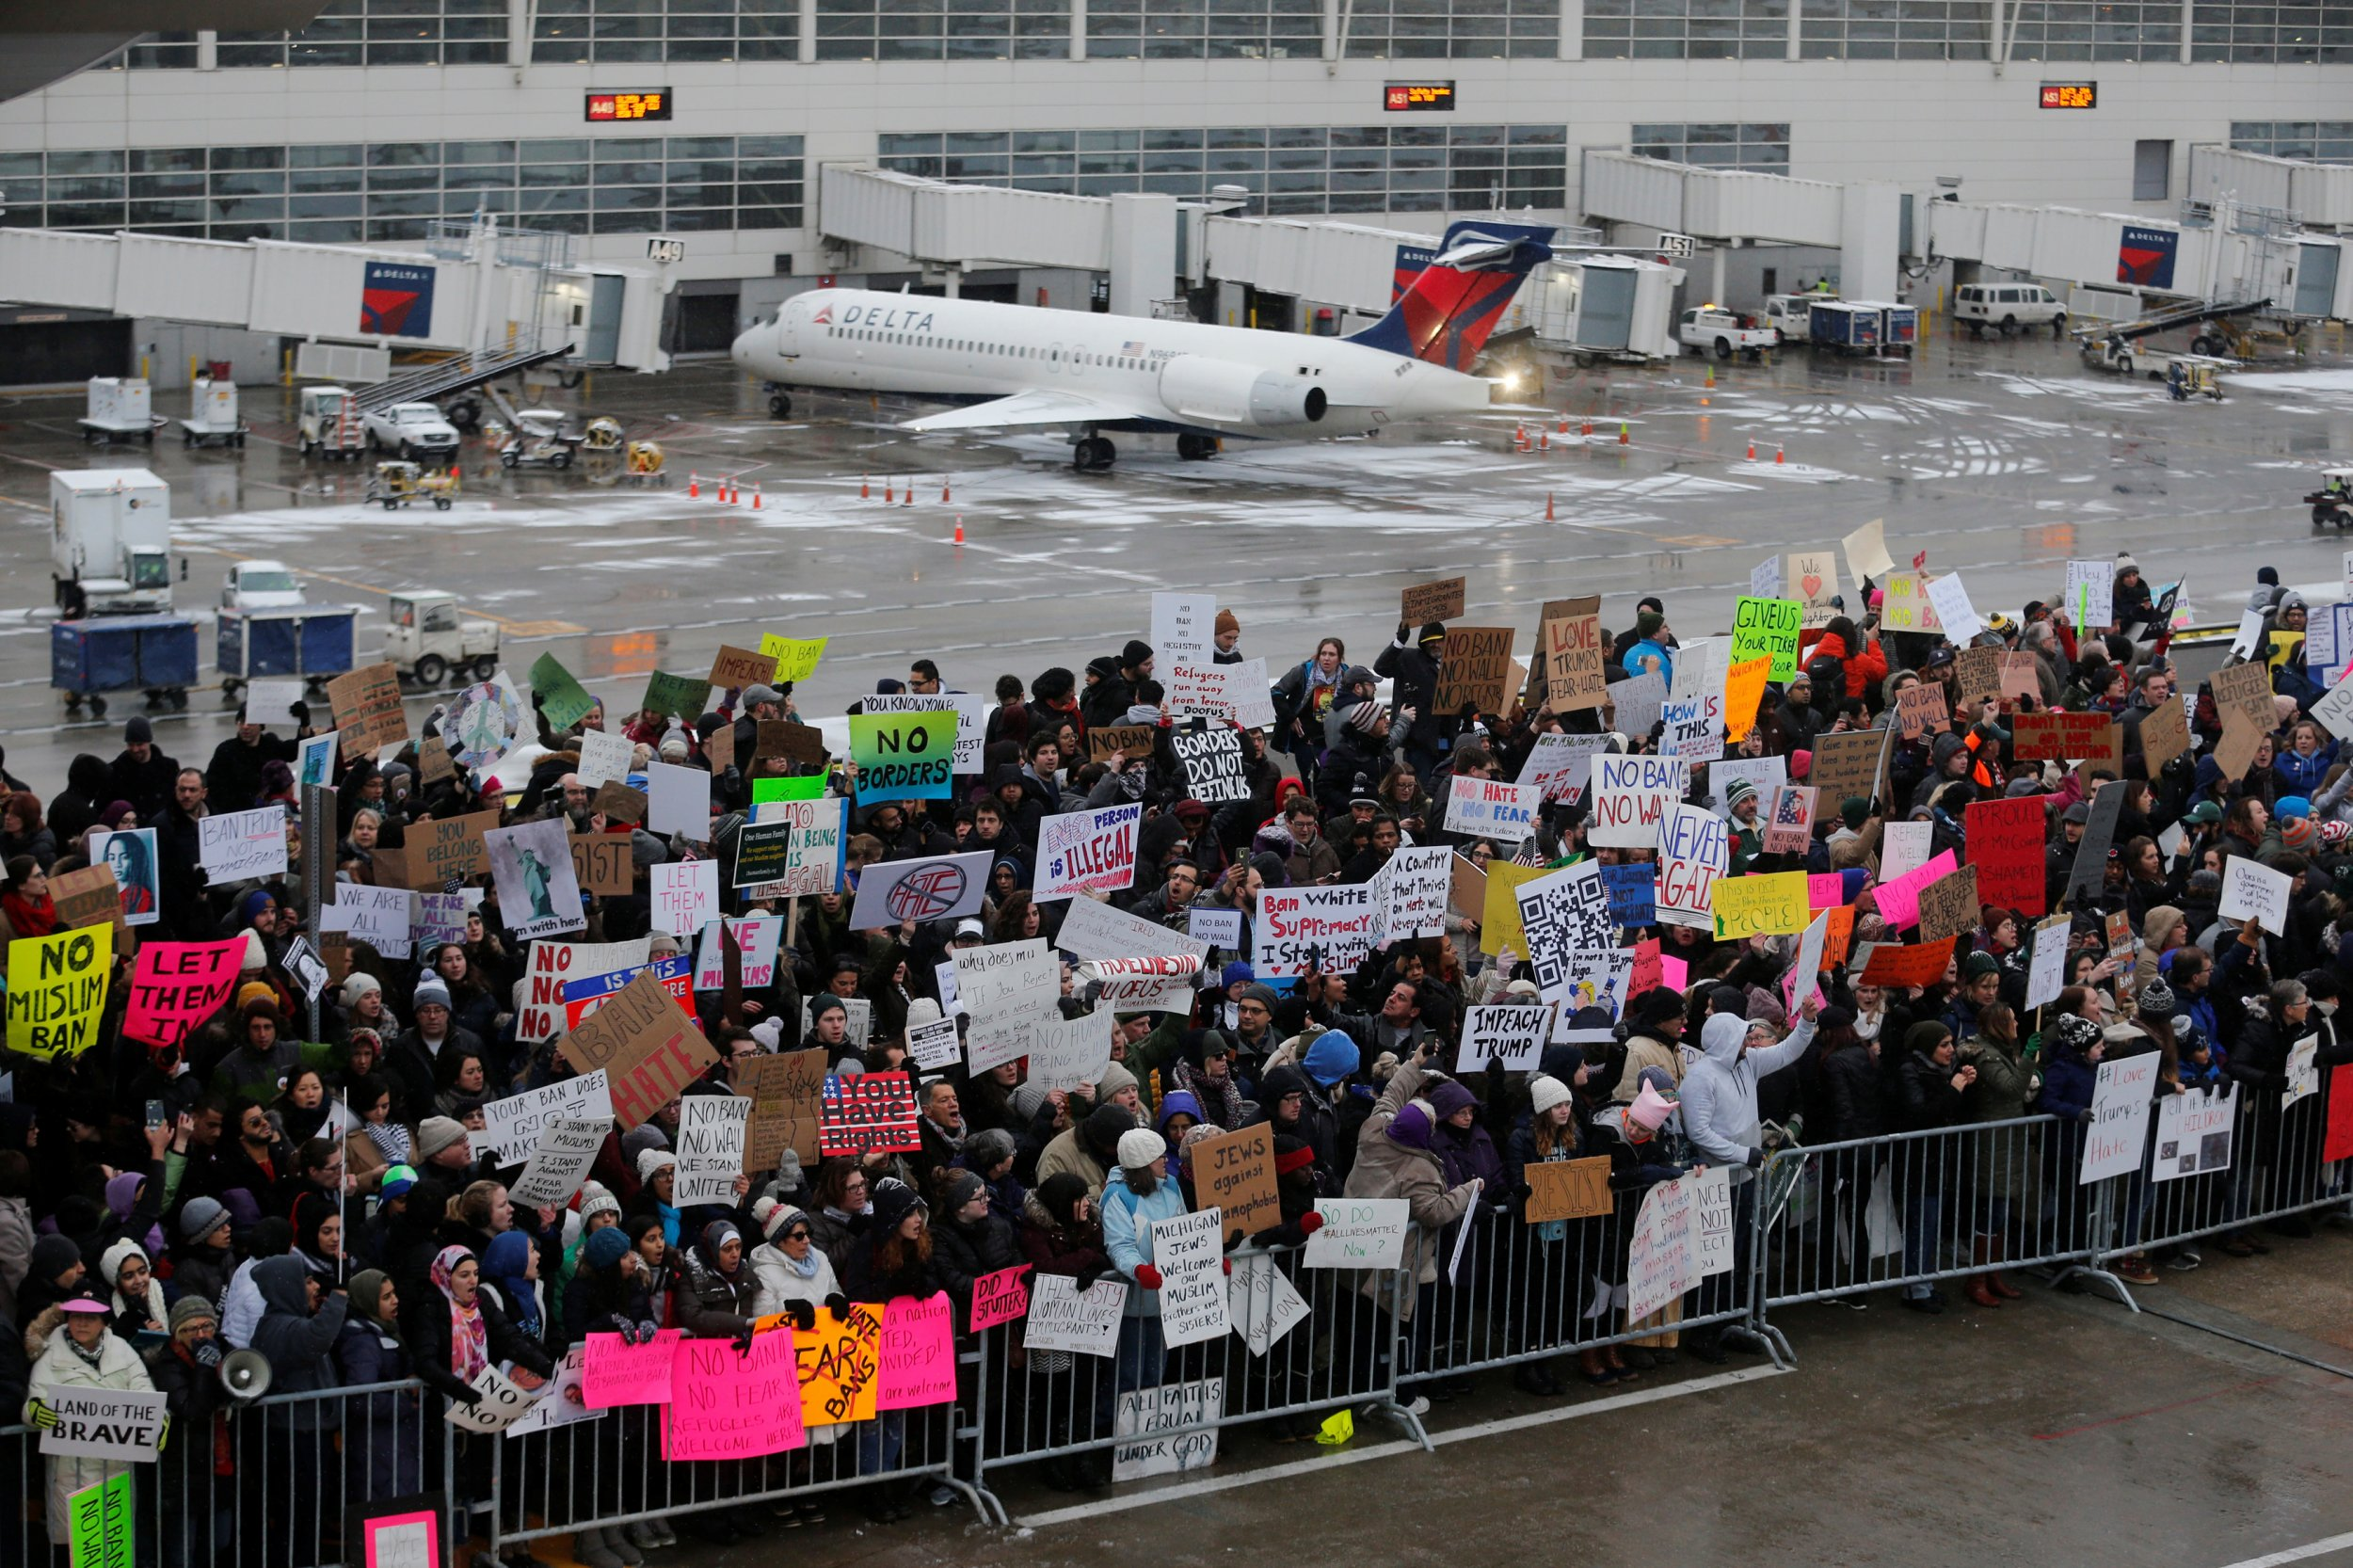 130_Travel Ban Protests